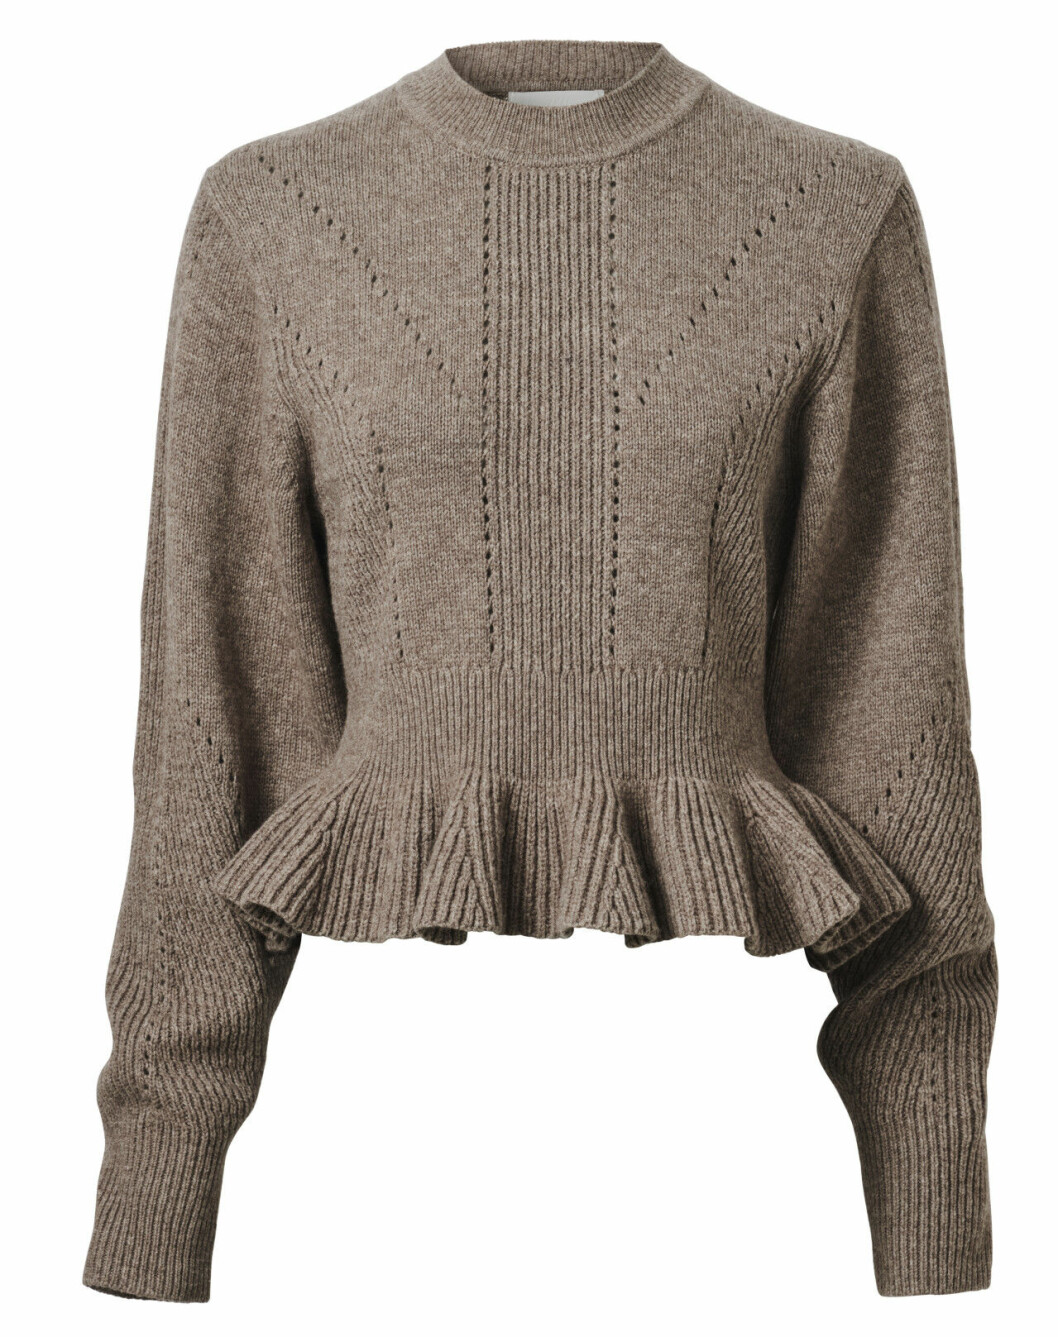 H&M Conscious Exclusive AW19 –stickad tröja med volanger